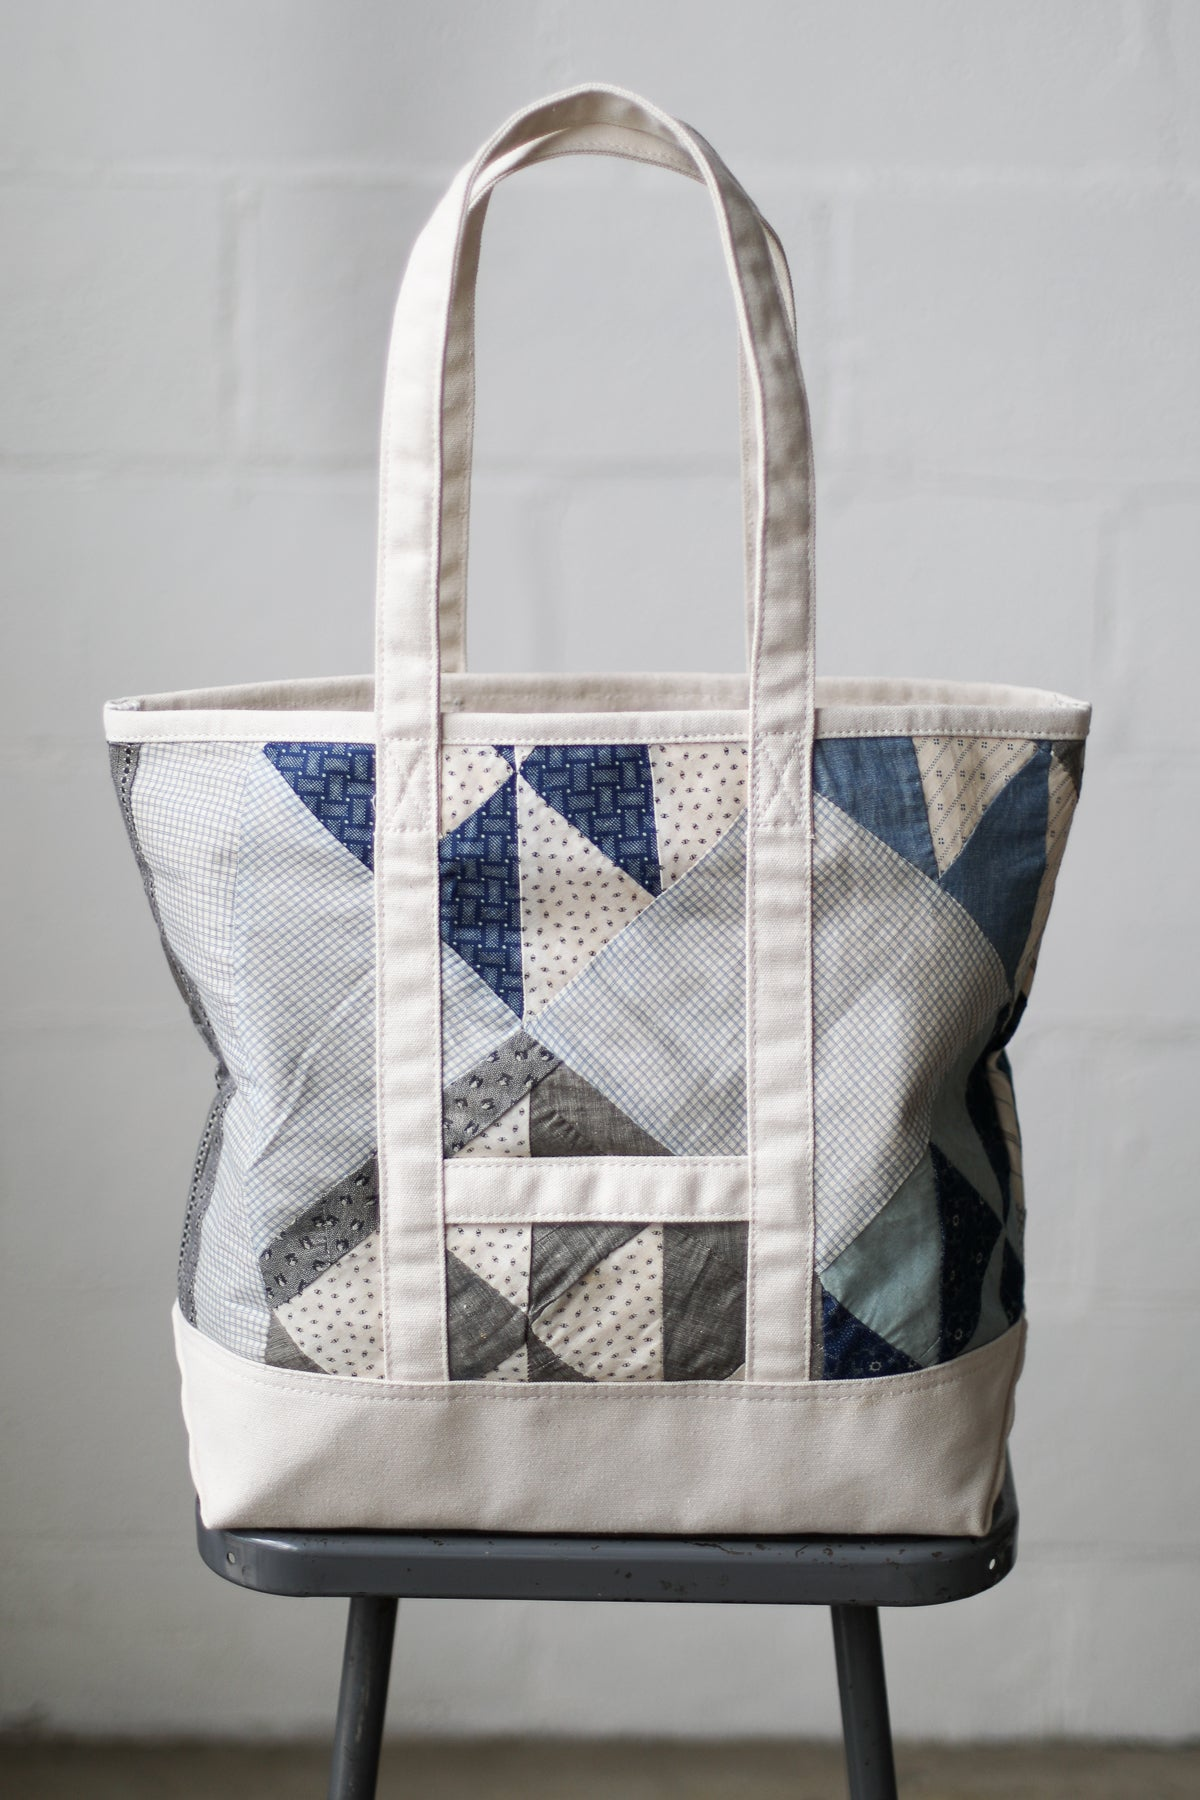 Reclaimed Market Tote No. 027